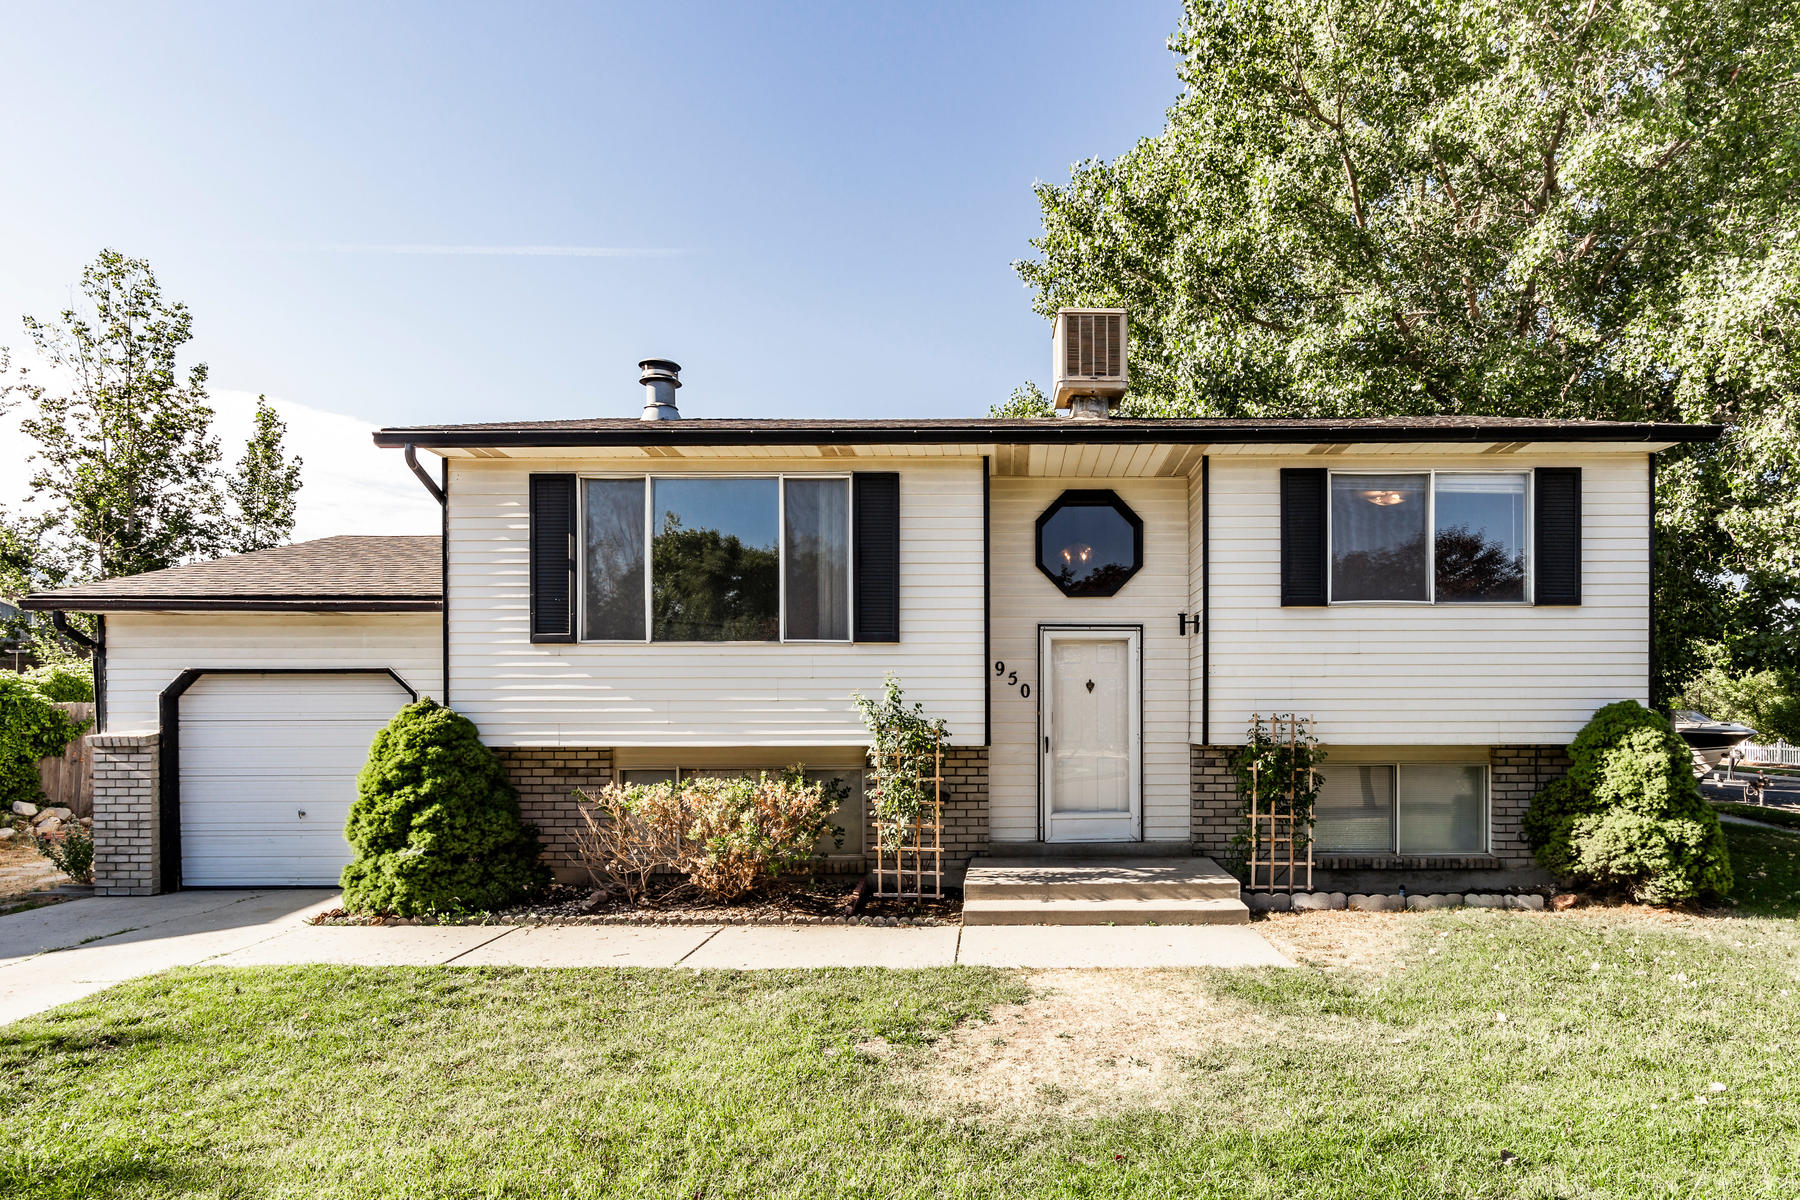 Single Family Homes for Active at Quiet Sandy Cul-de-Sac 950 E South Fork Cir Sandy, Utah 84094 United States